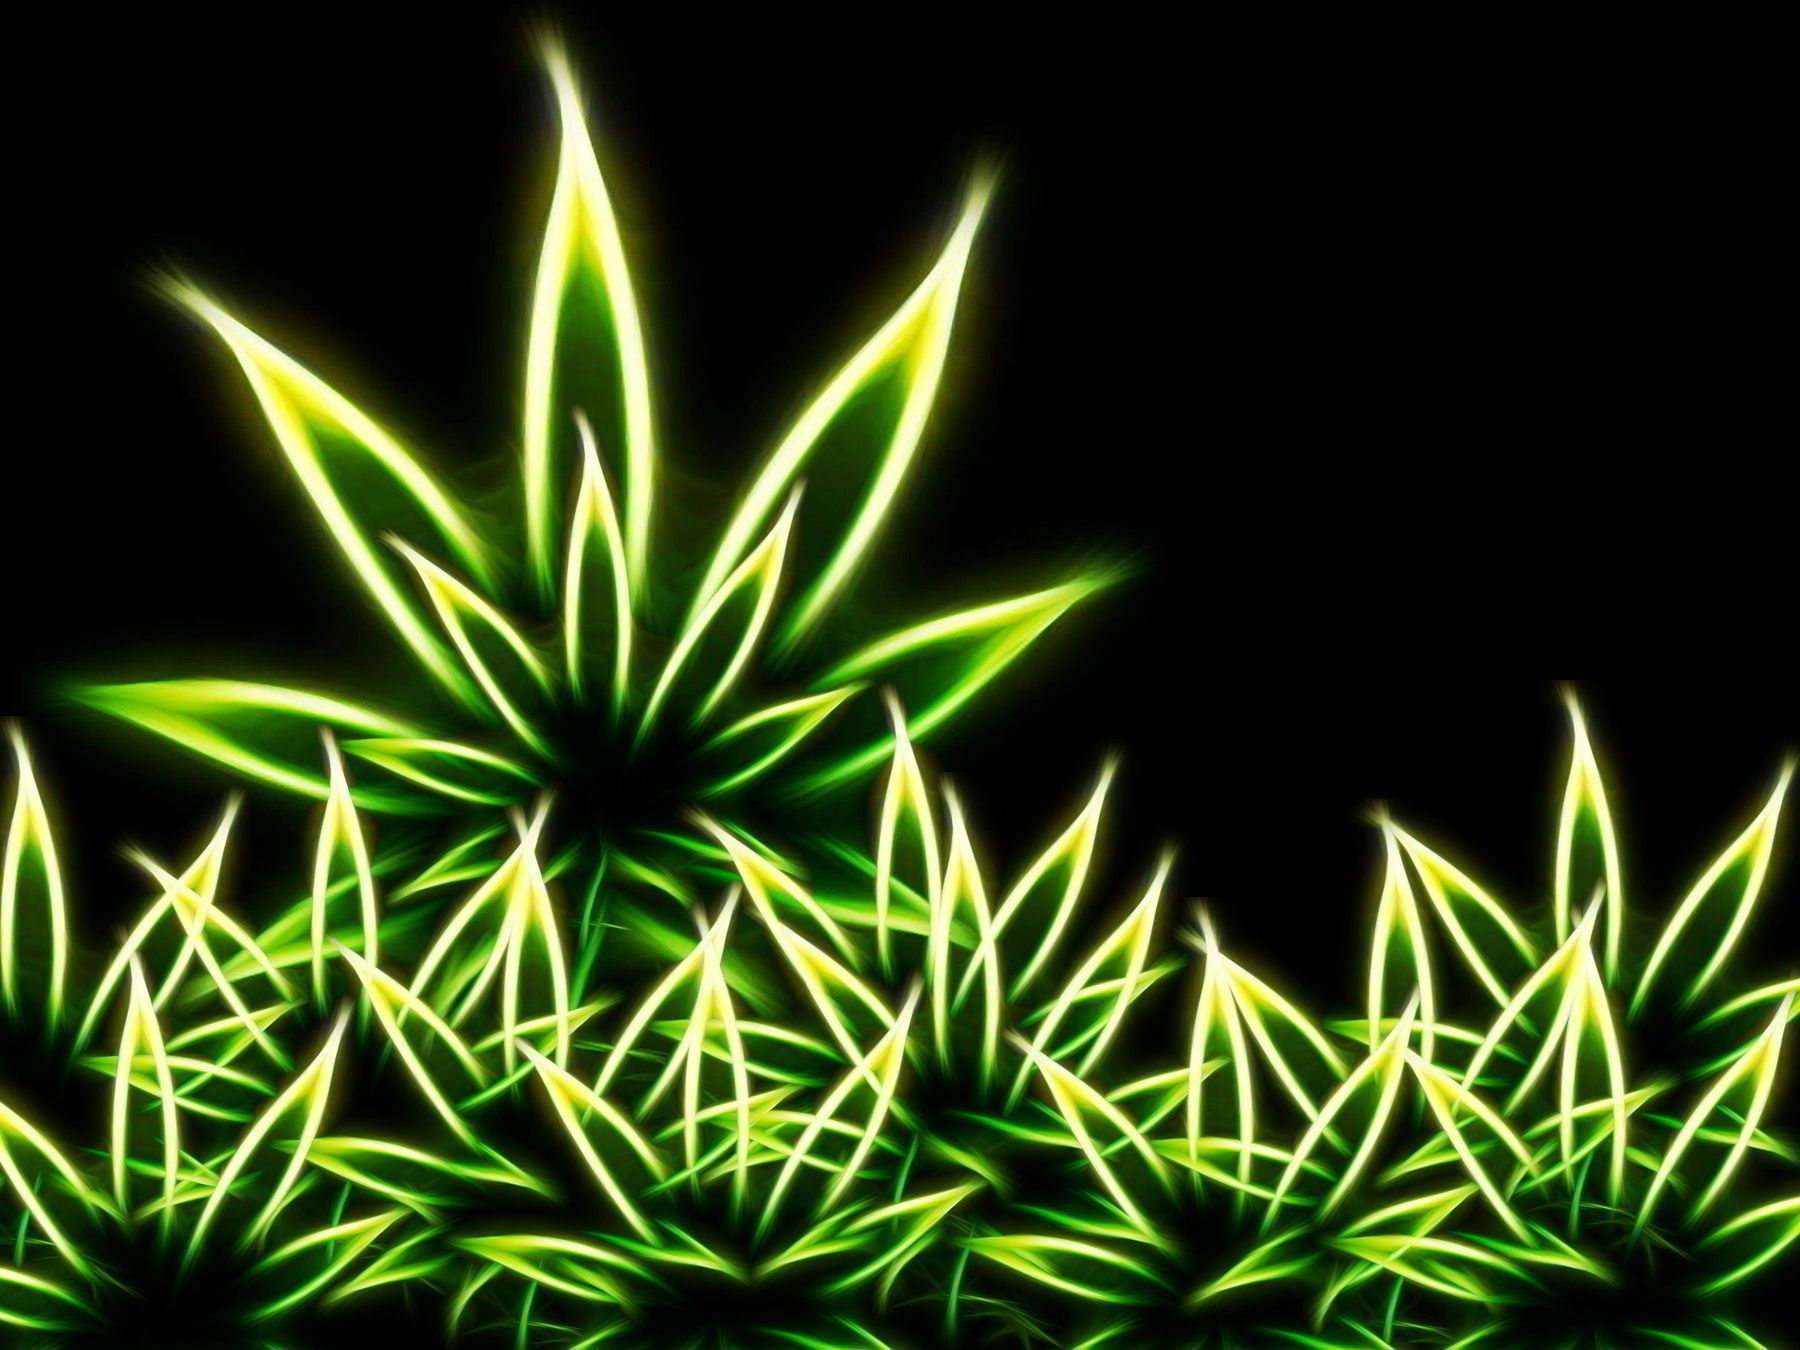 """1920x1080 Funny Weed Wallpapers - Shared by 